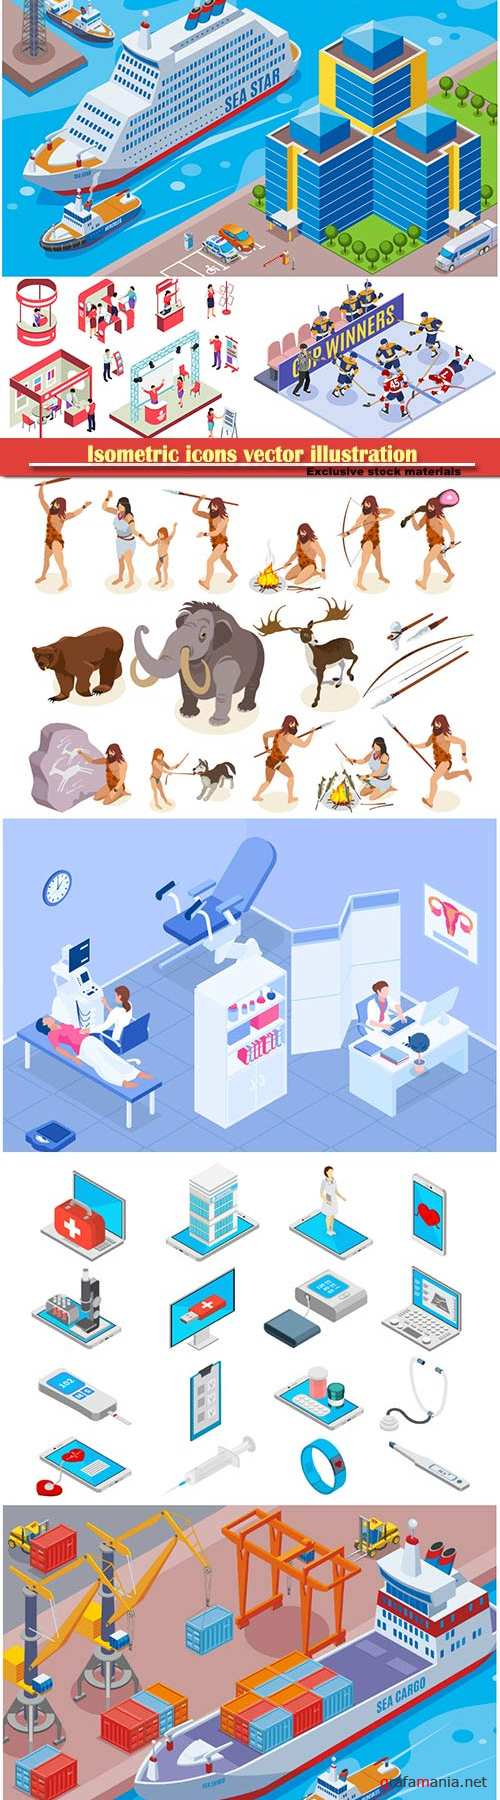 Isometric icons vector illustration, banner design template # 25